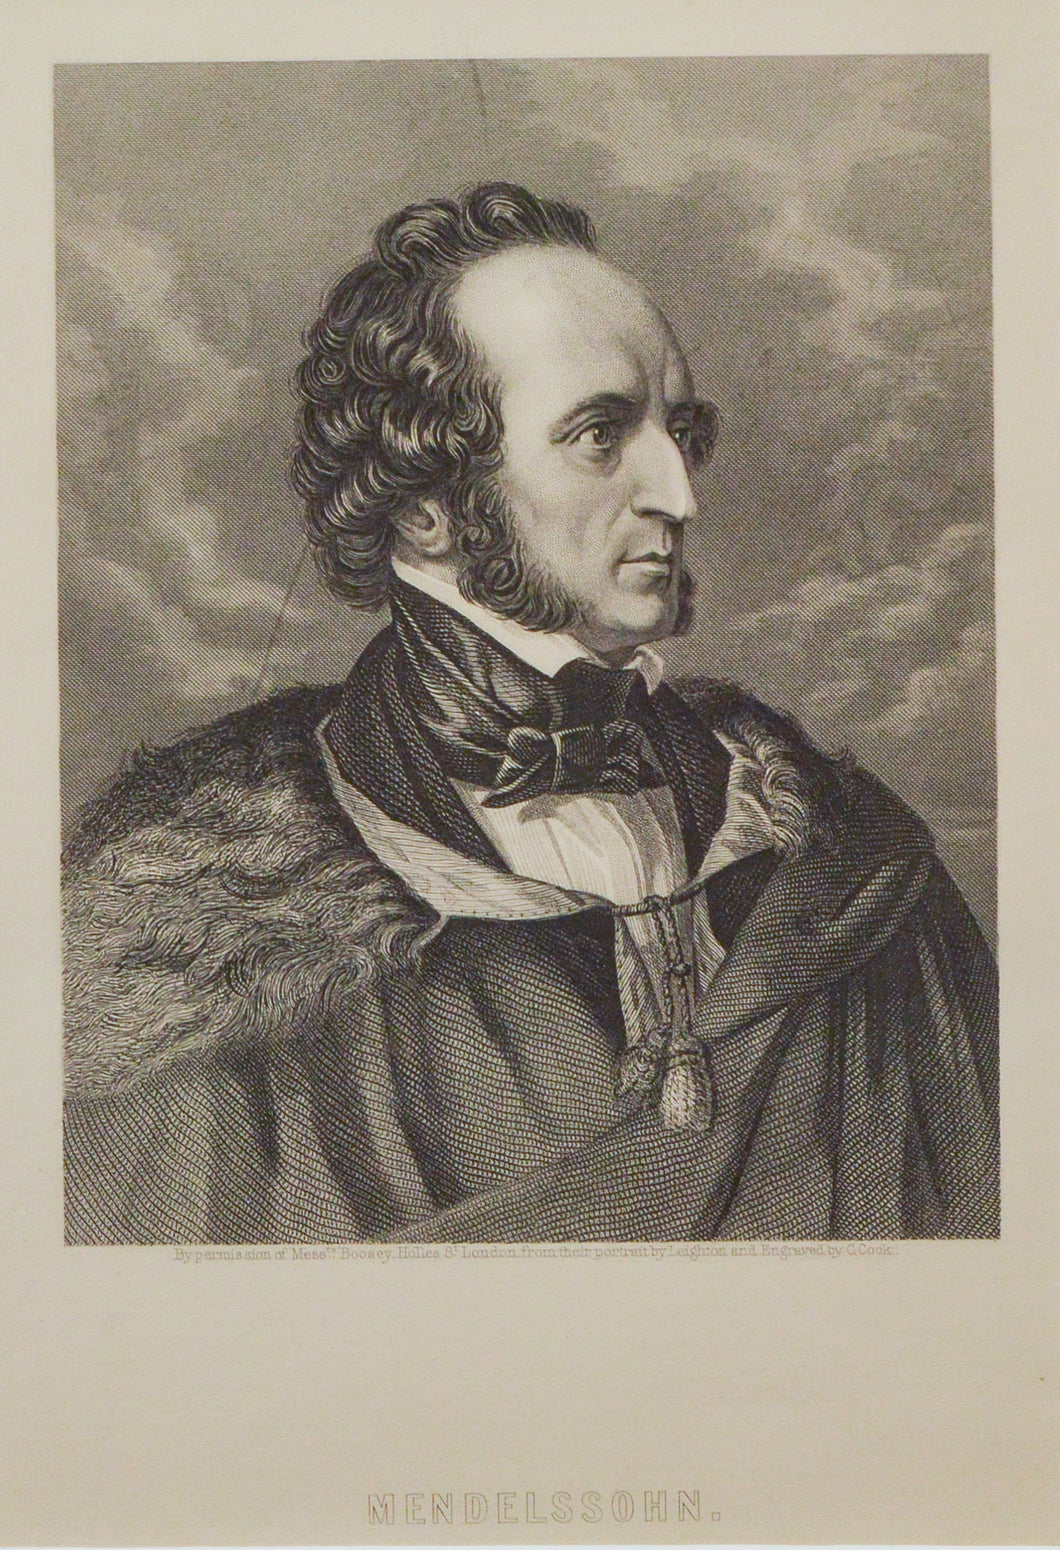 Mendelssohn - Antique Steel Engraving circa 1860